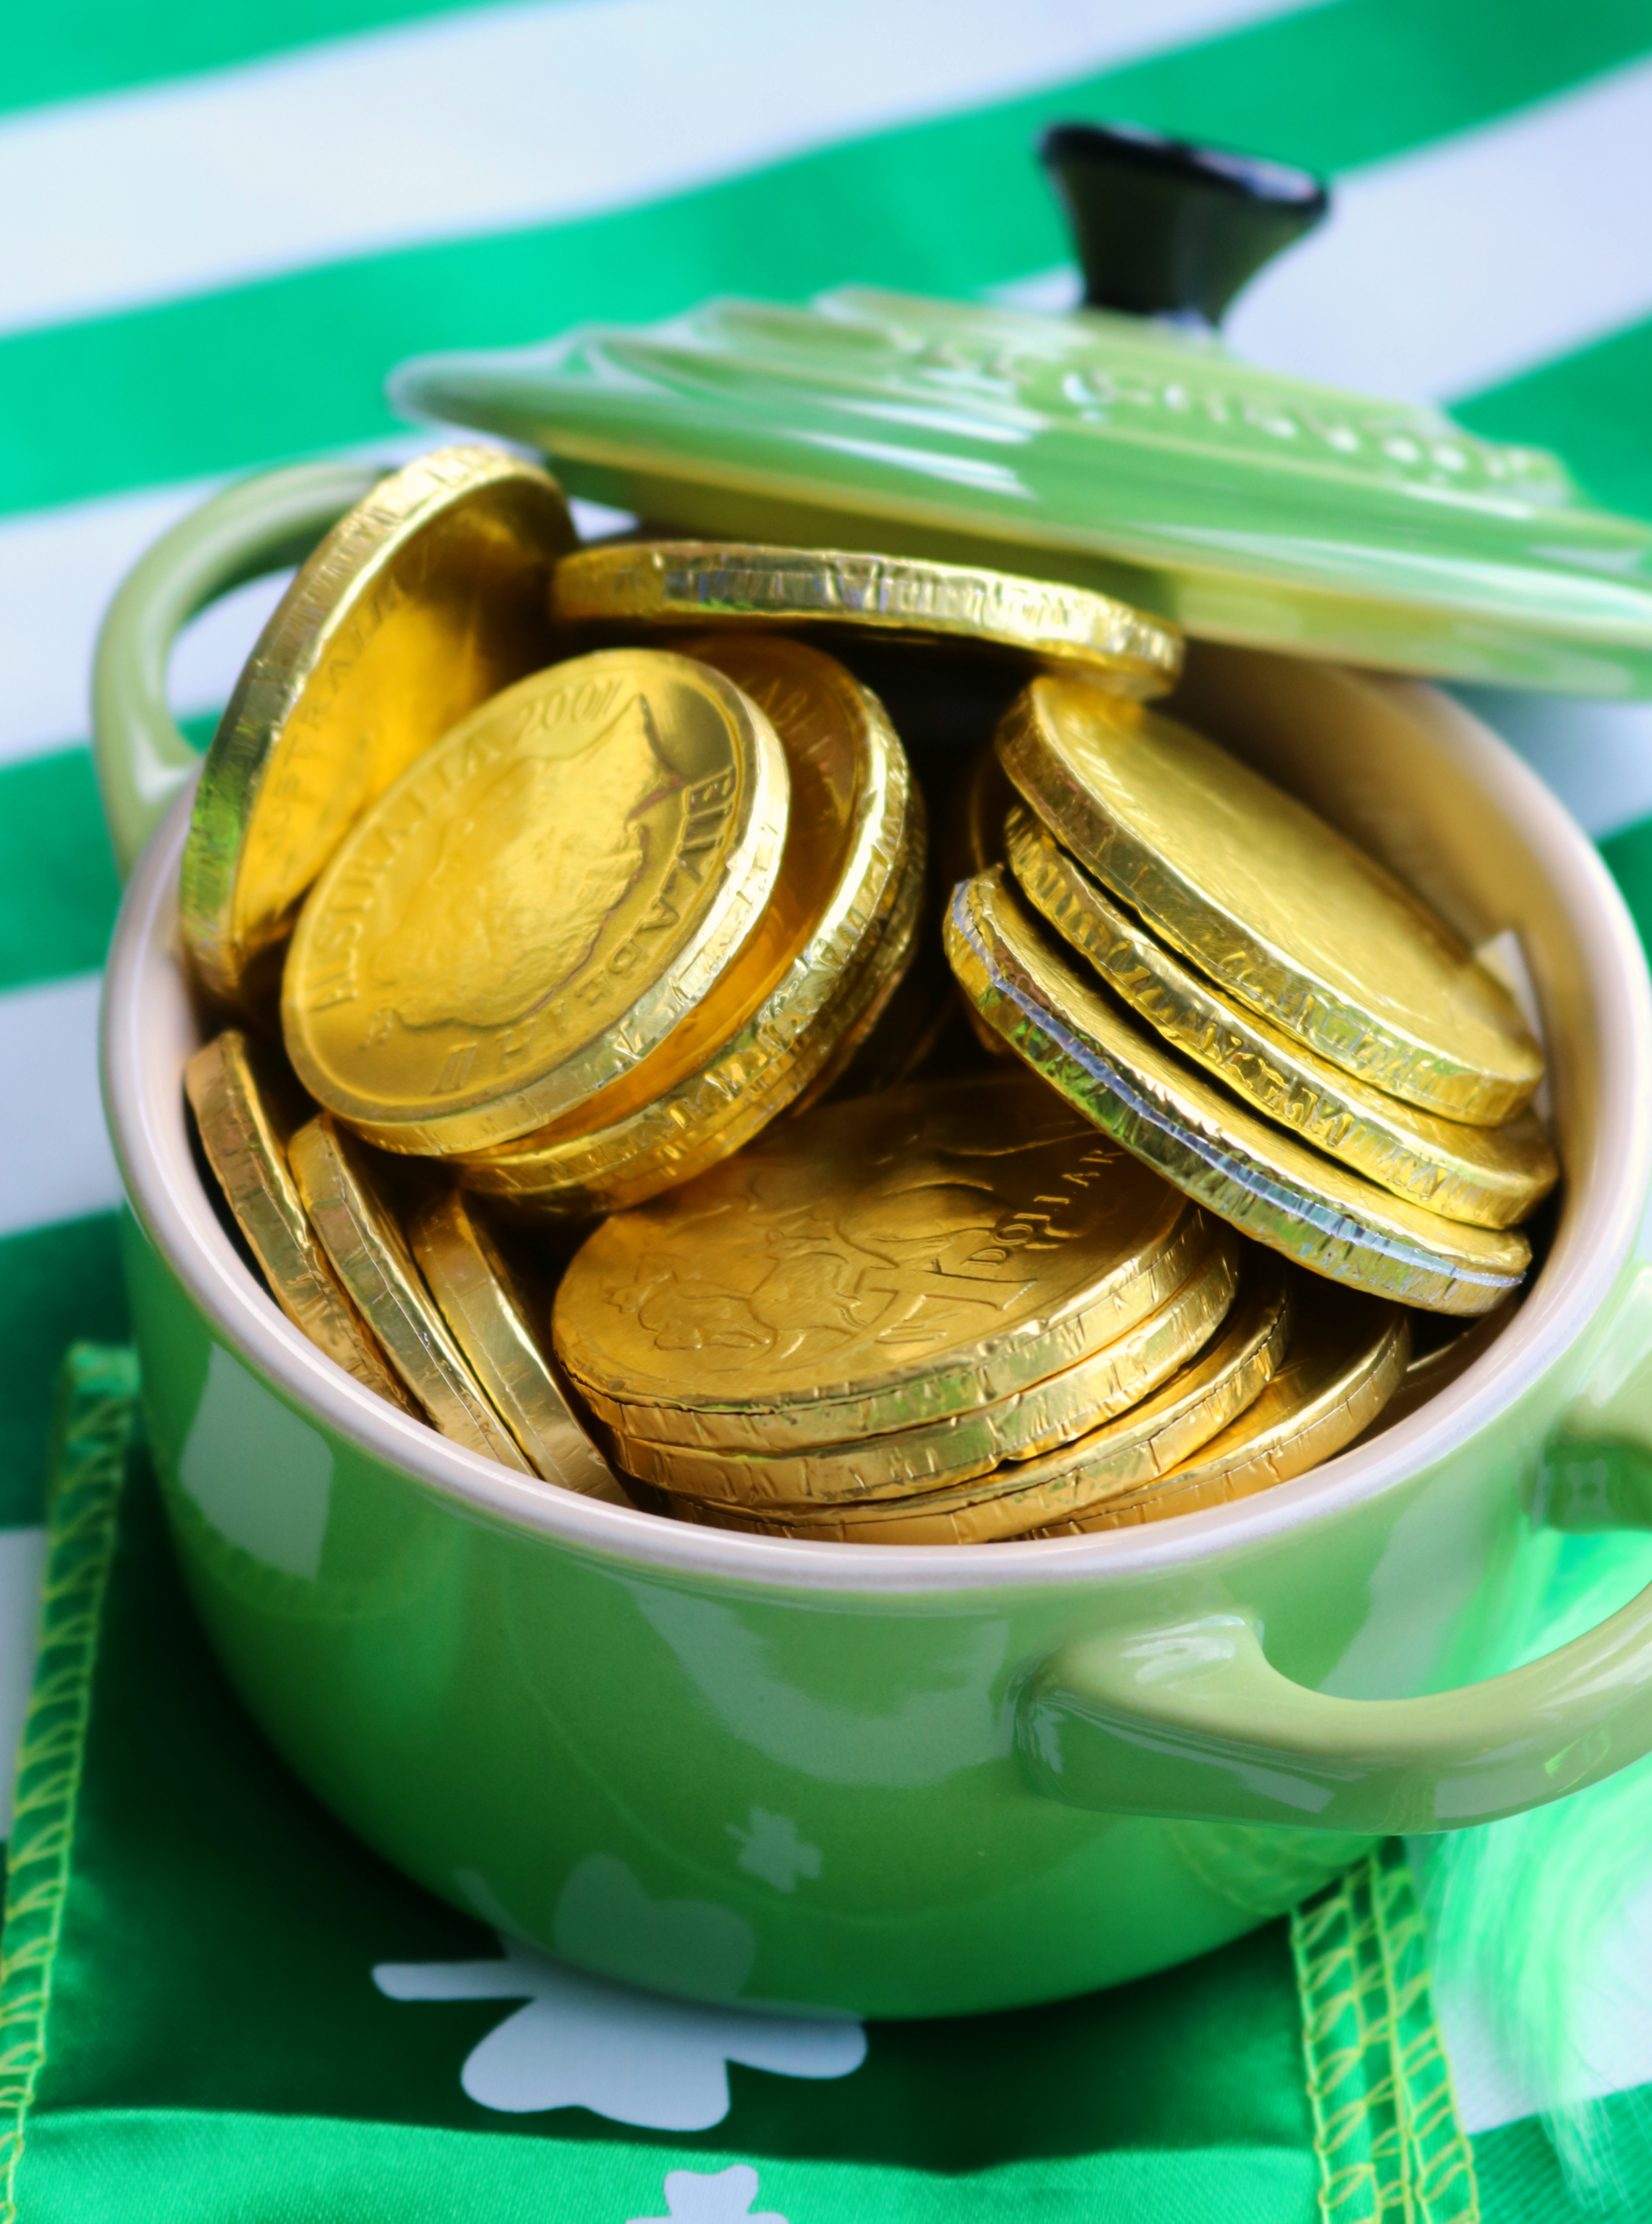 St Patrick's Day Chocolate Coins